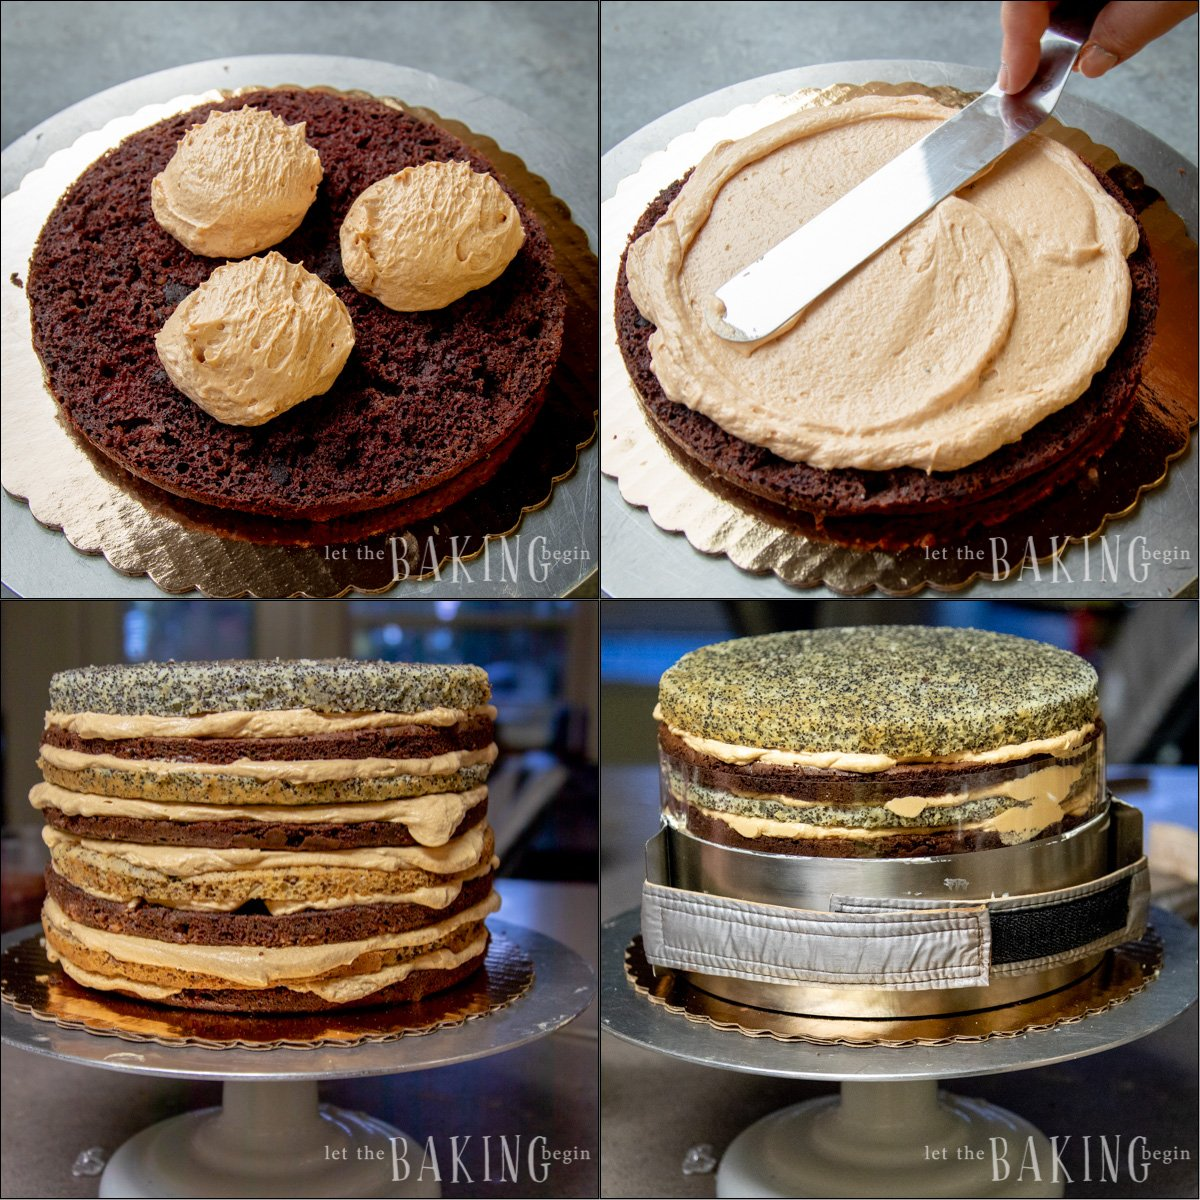 Step by step process of layering the Russian Royal Cake